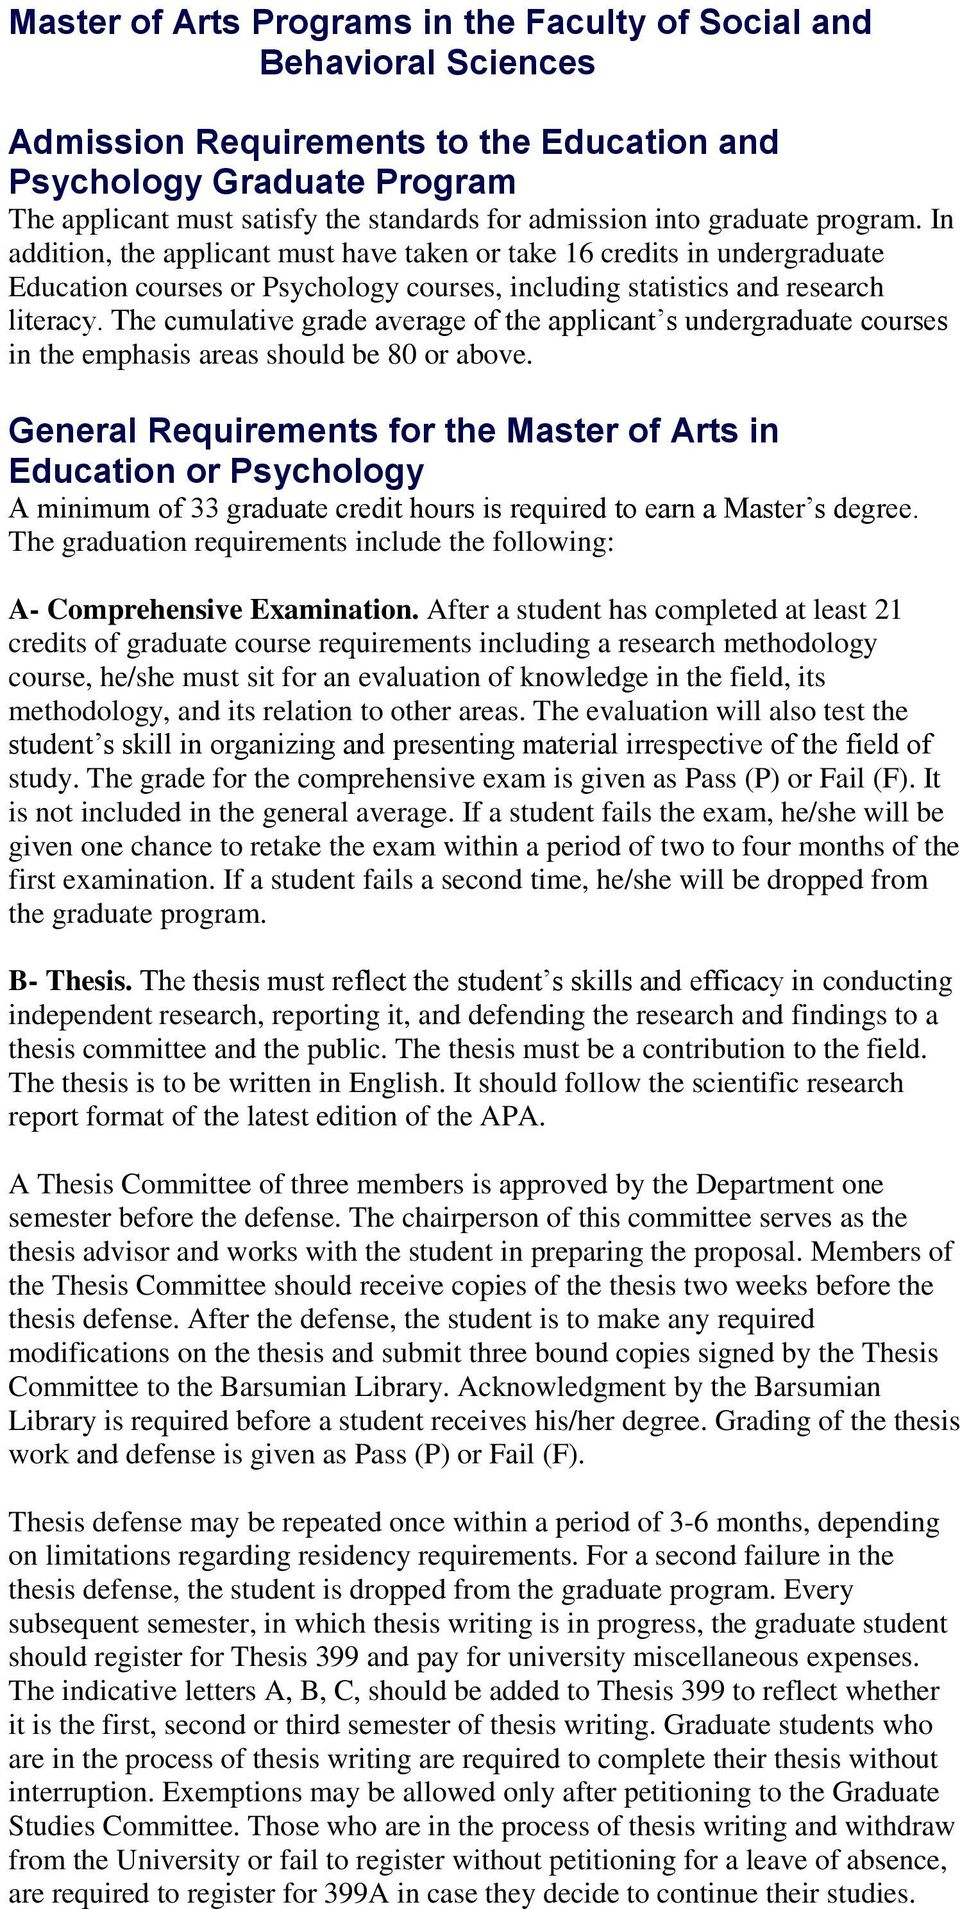 master of arts programs in the faculty of social and behavioral